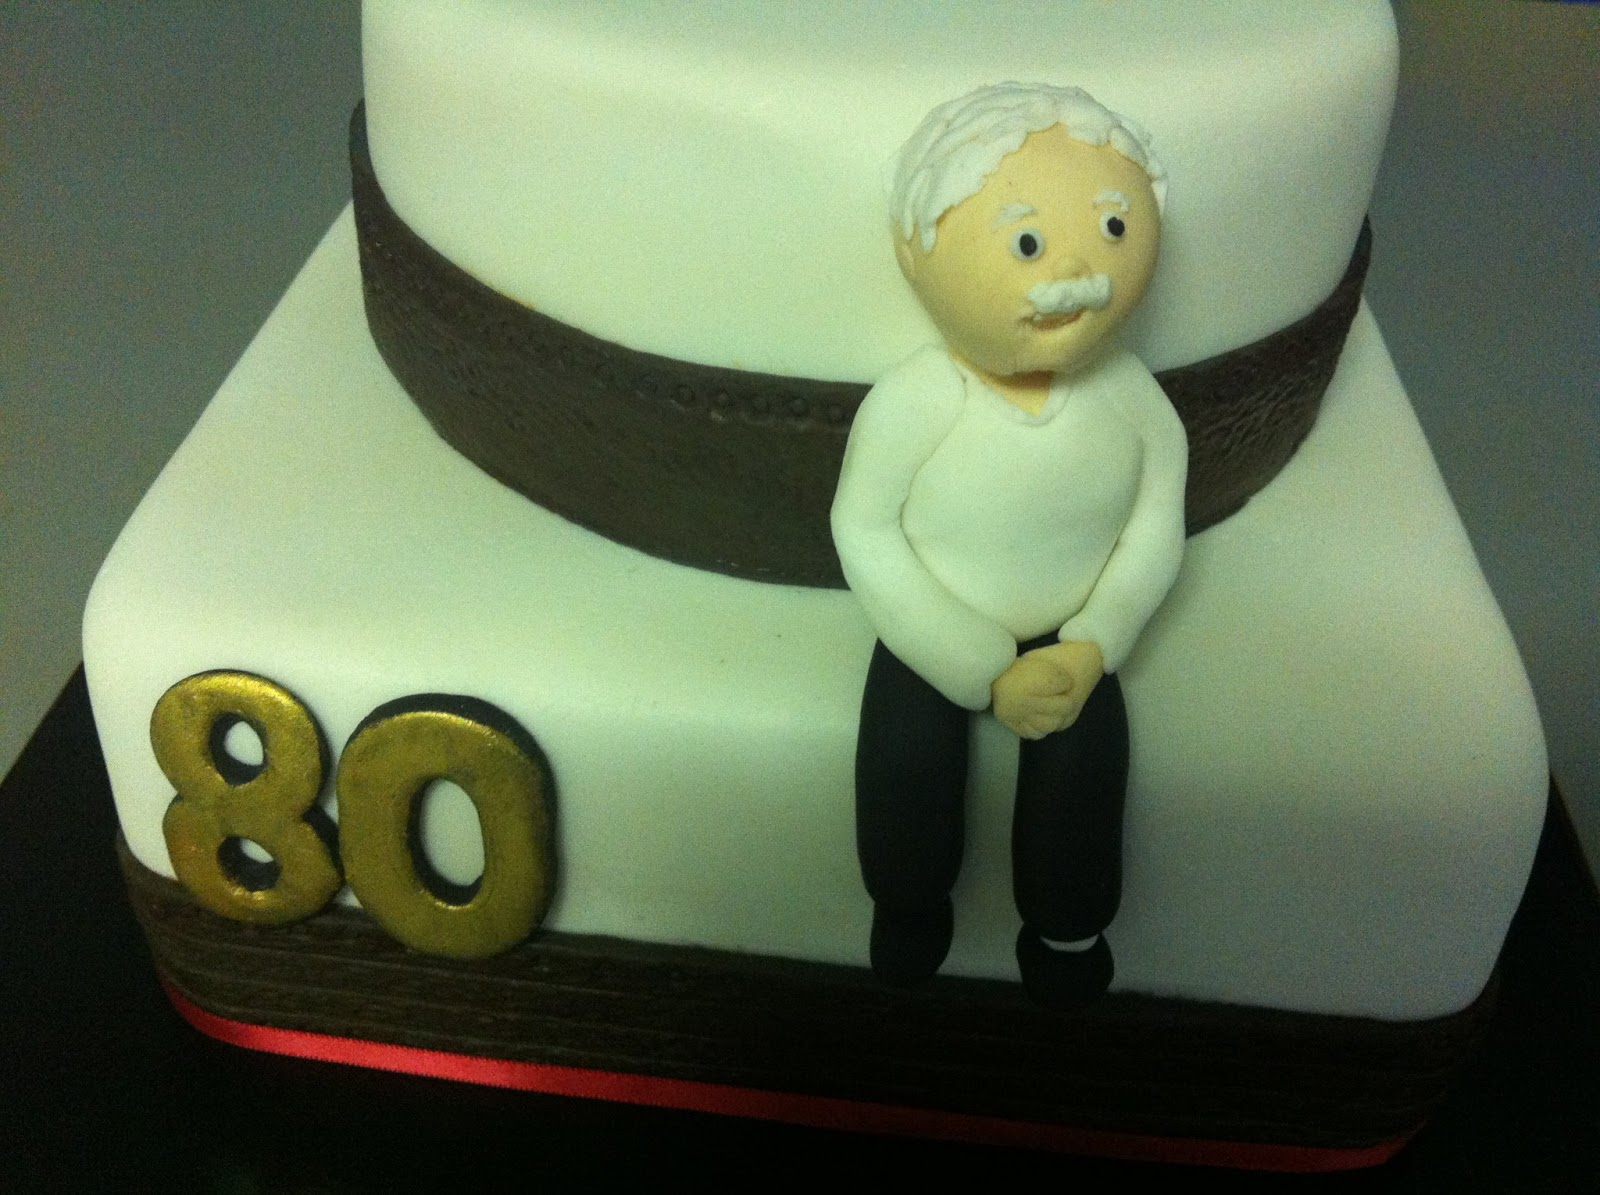 Birthday Cake 80 Year Old Man